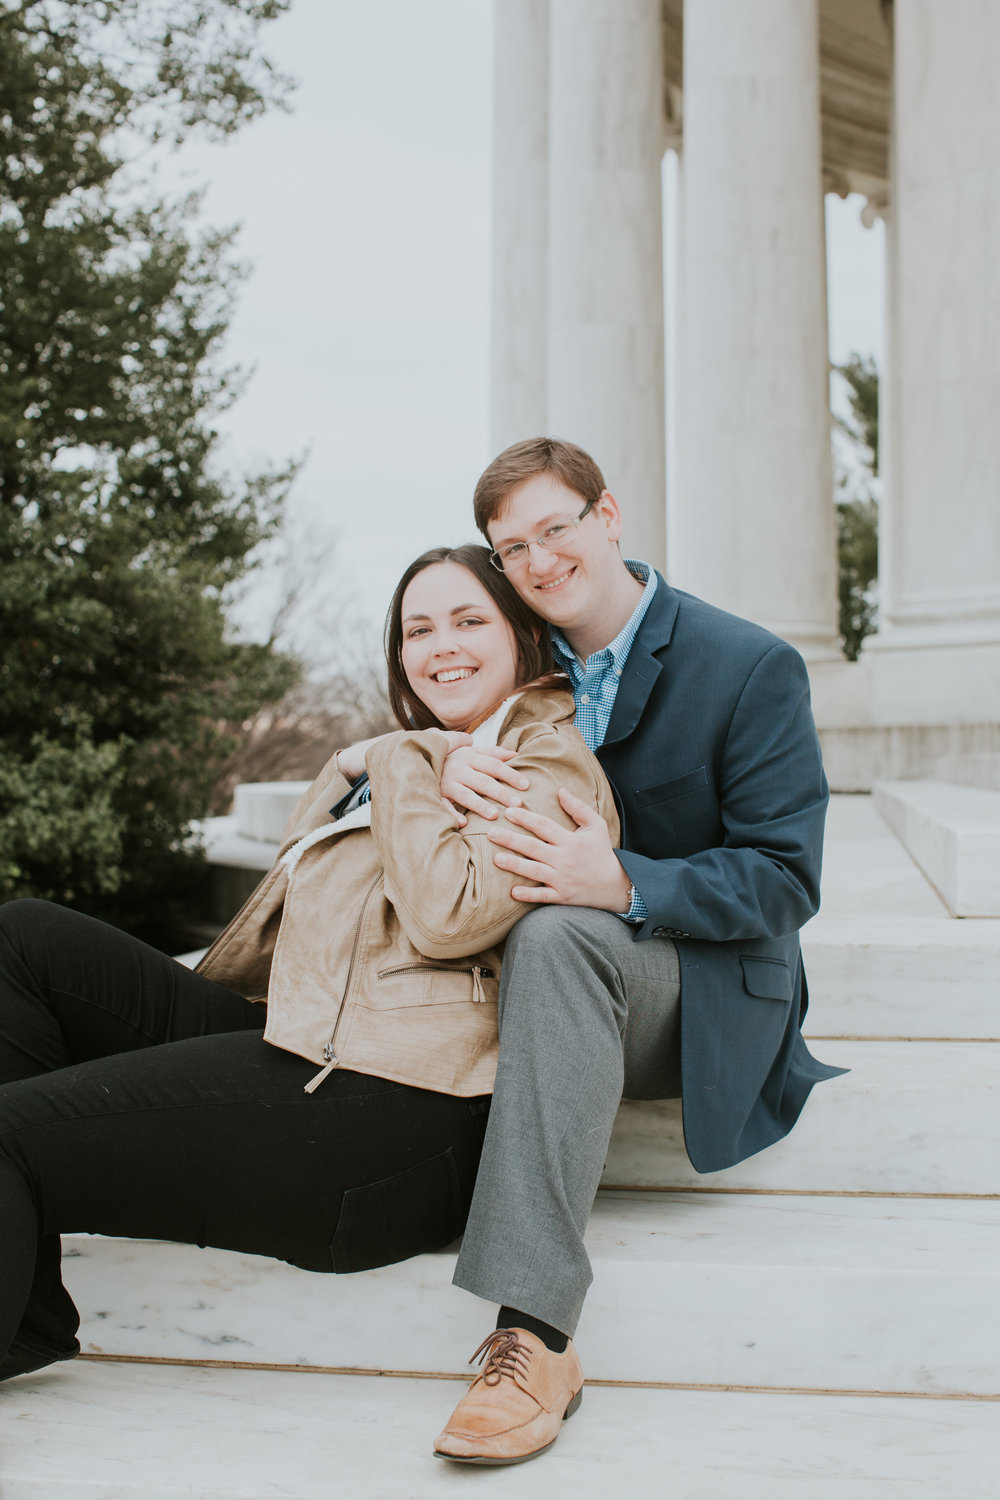 Julia&Daniel_Engaged-146.jpg